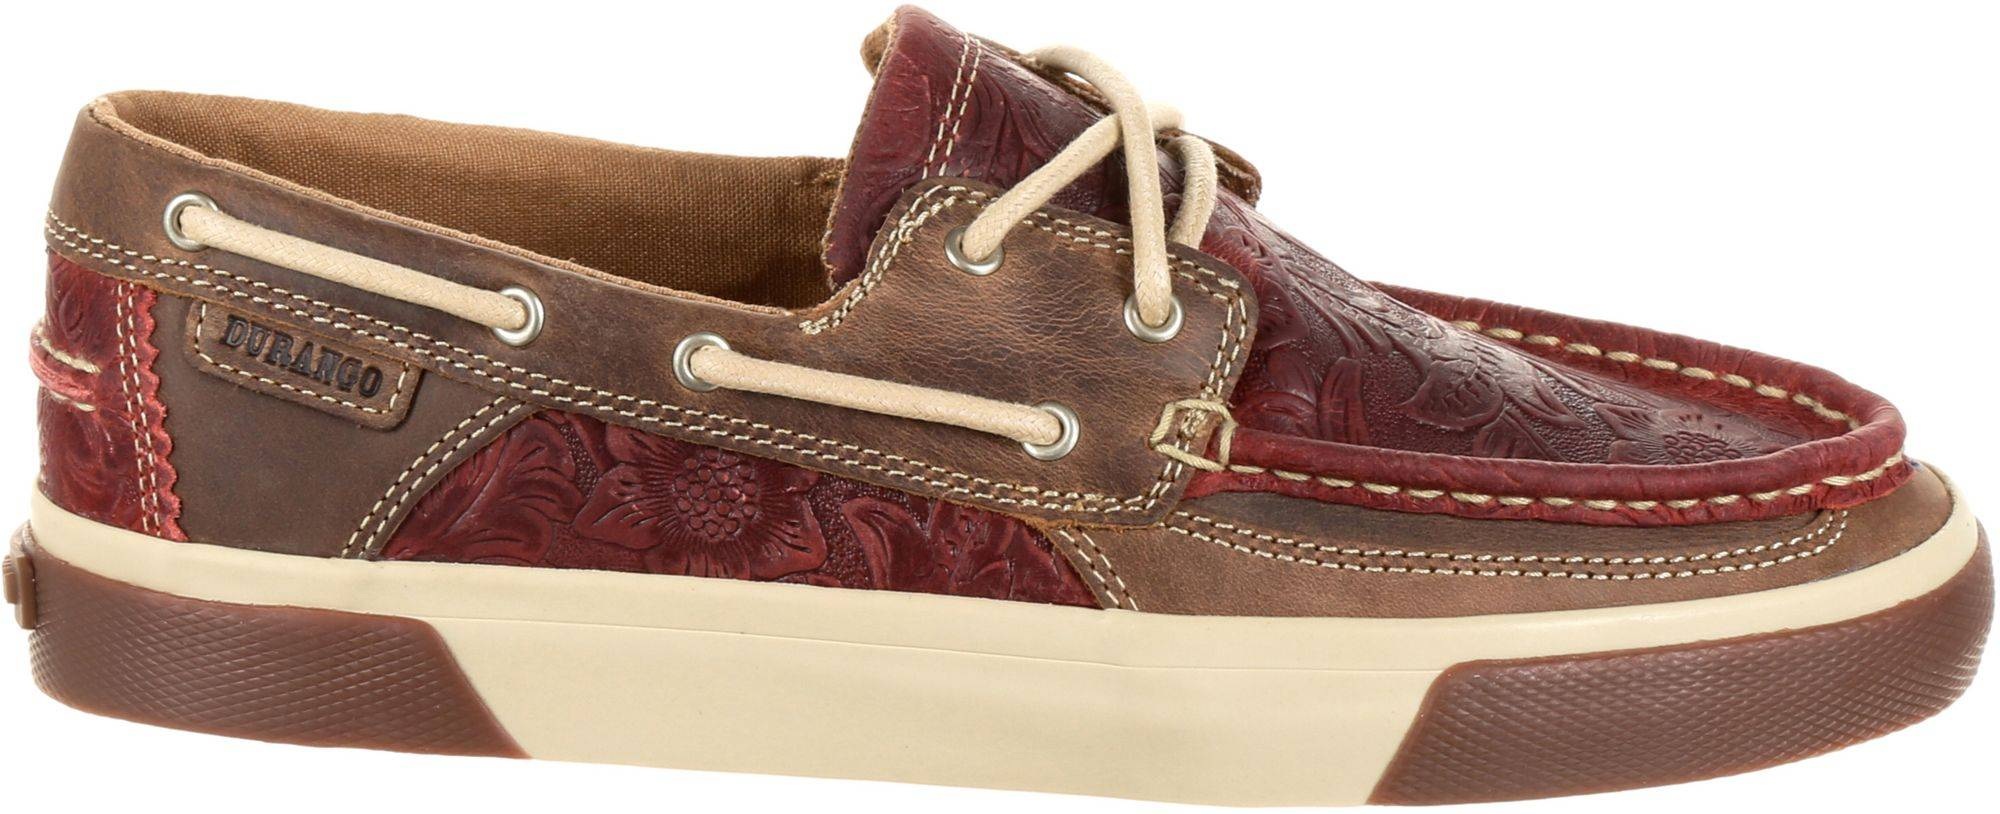 Durango Women's Music City Western Embossed Boat Shoes, Red